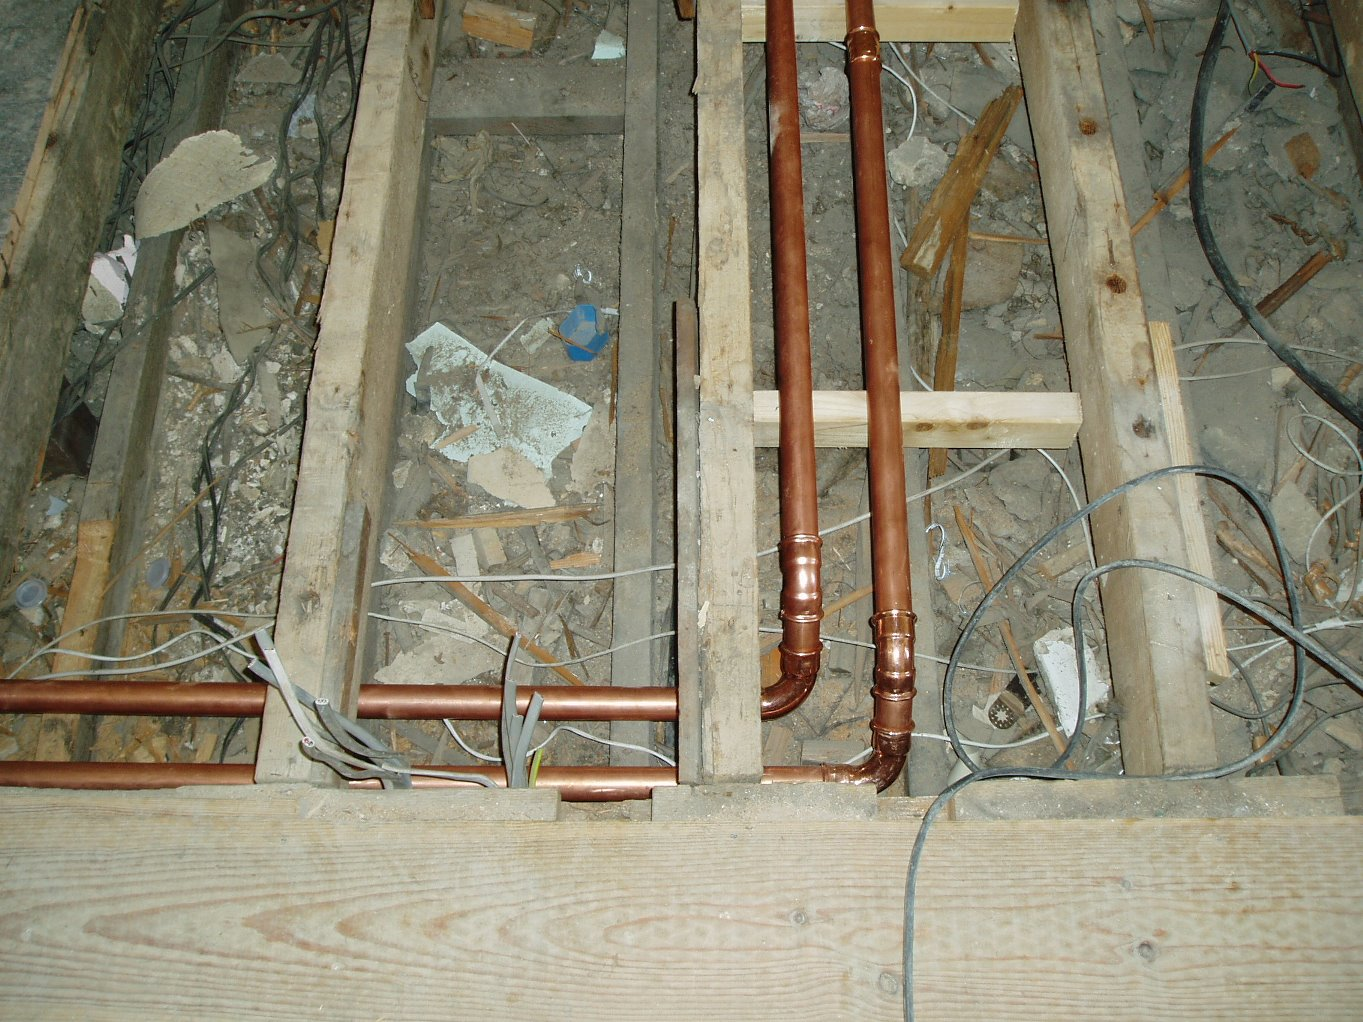 Heating pipes and cabling on the first floor